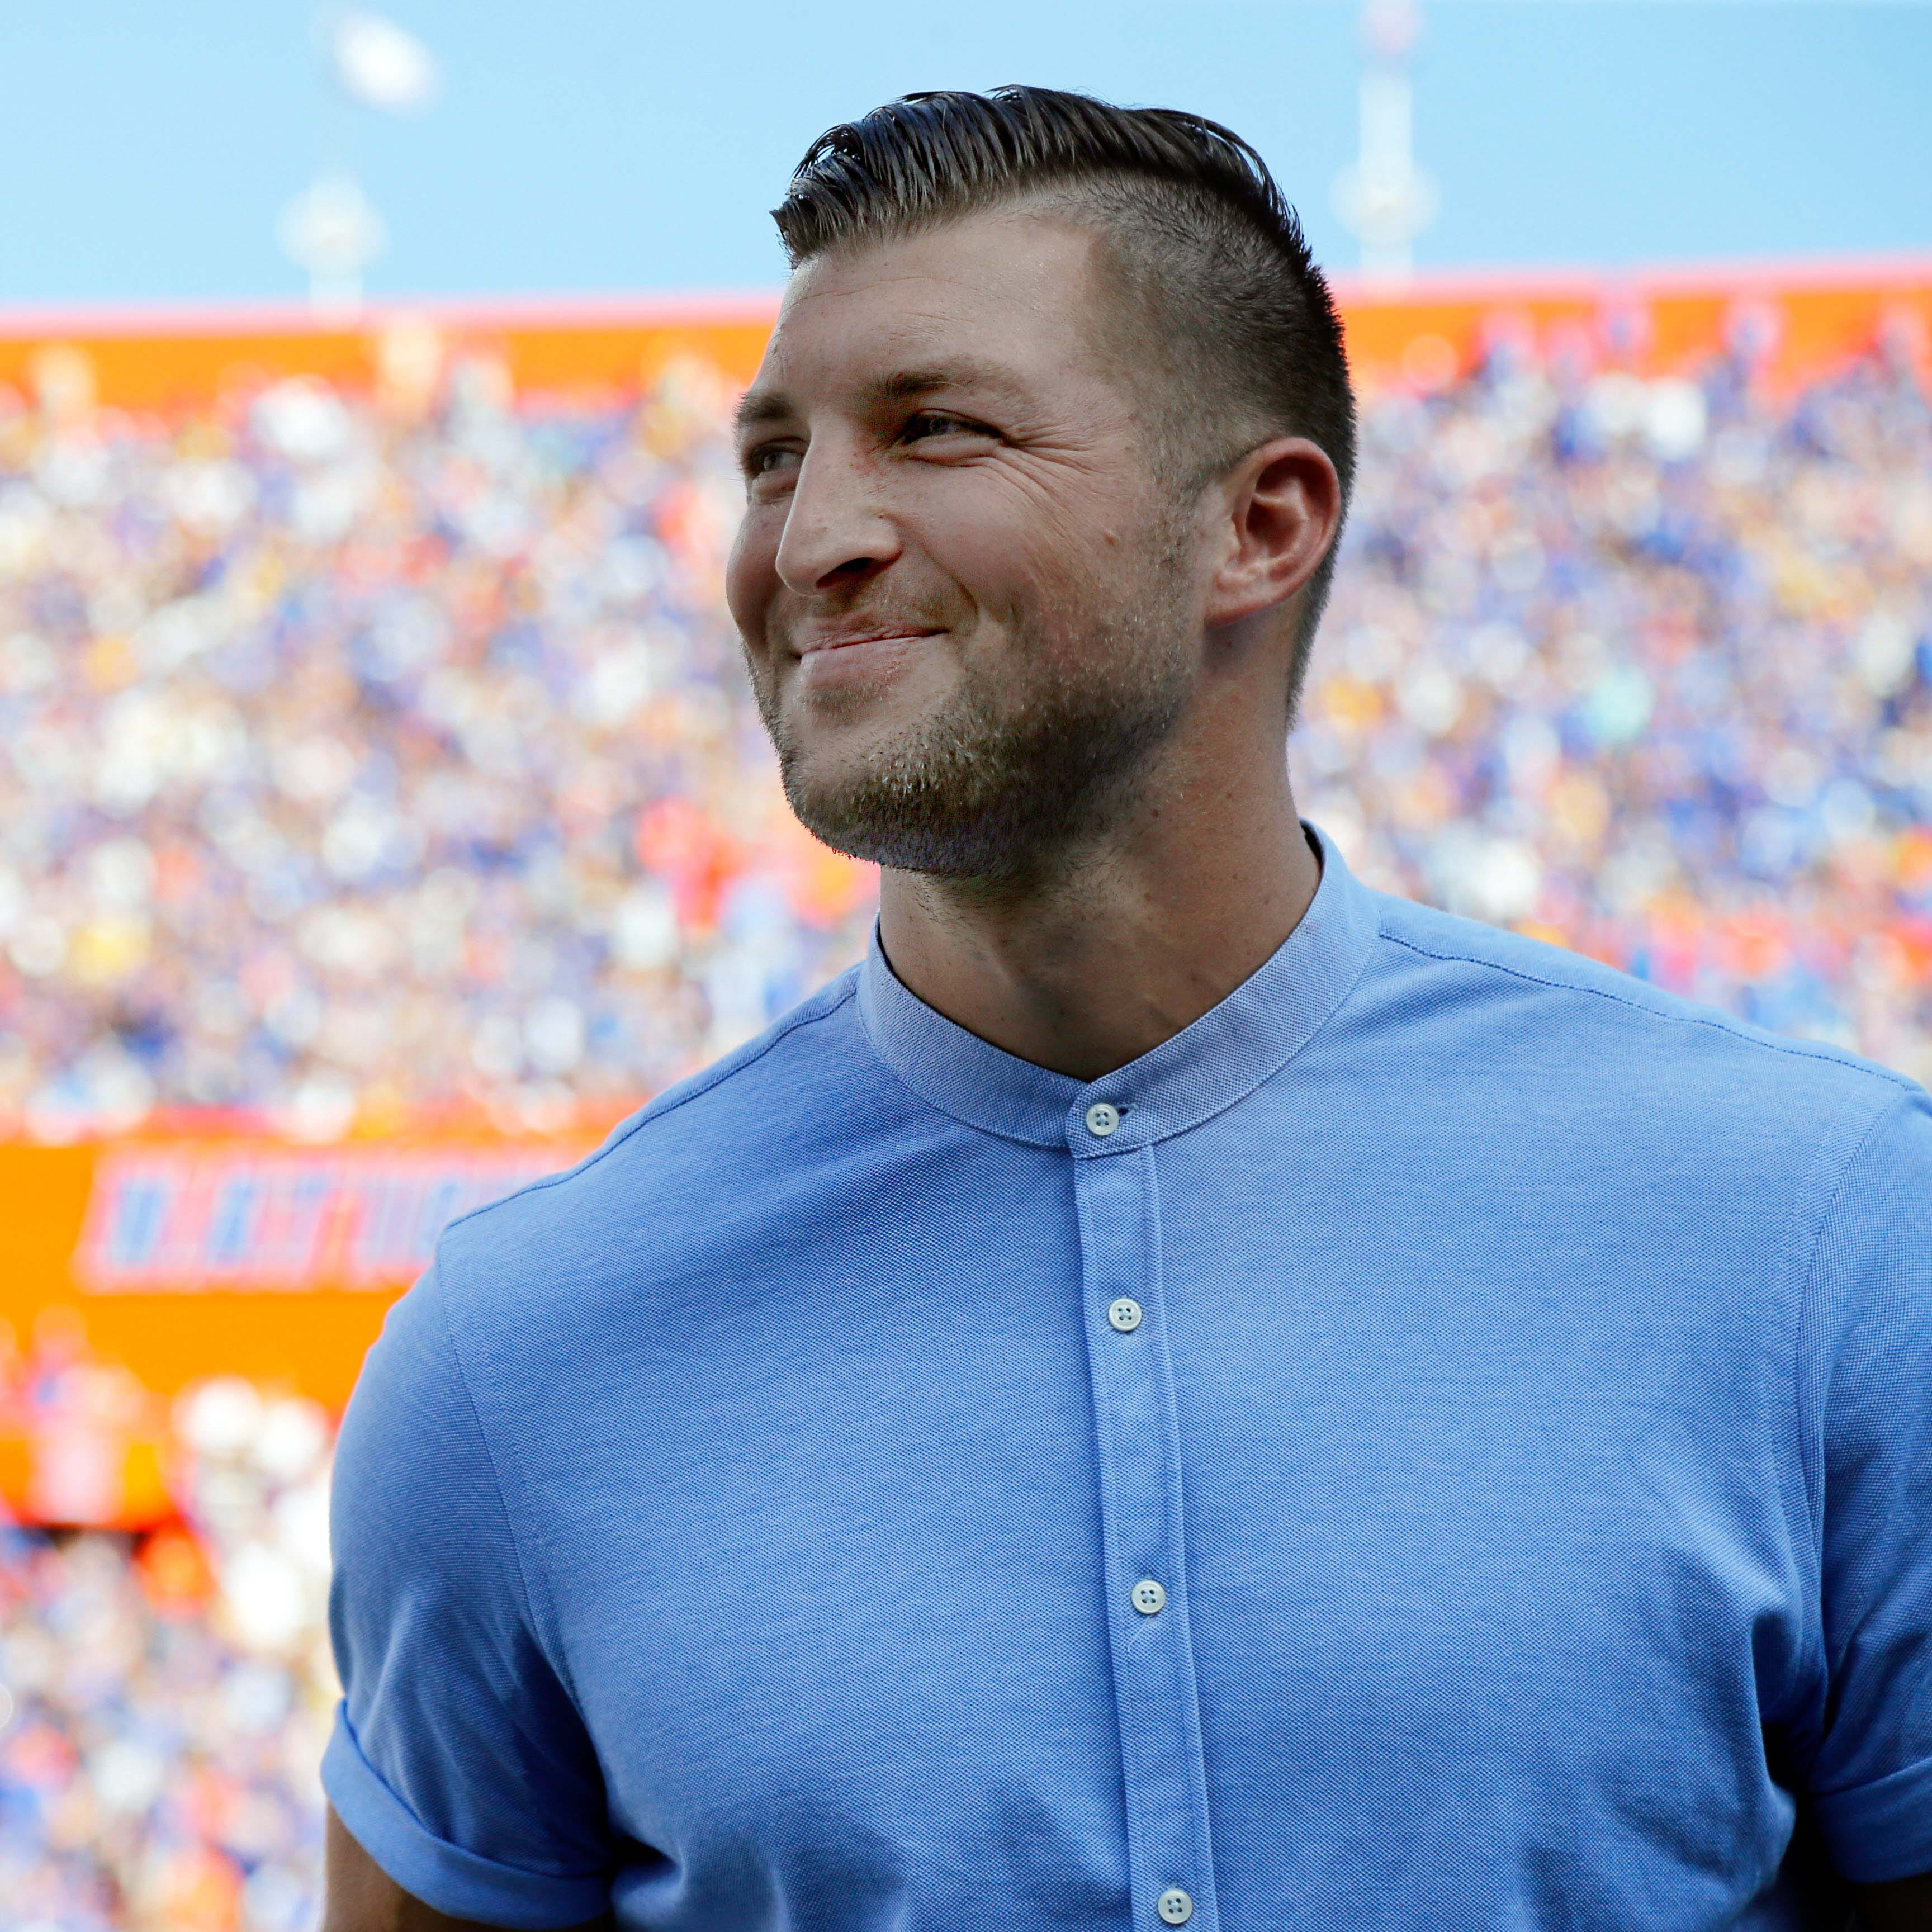 Tim Tebow to speak at Hearts on Fire Christian youth conference in Pigeon Forge